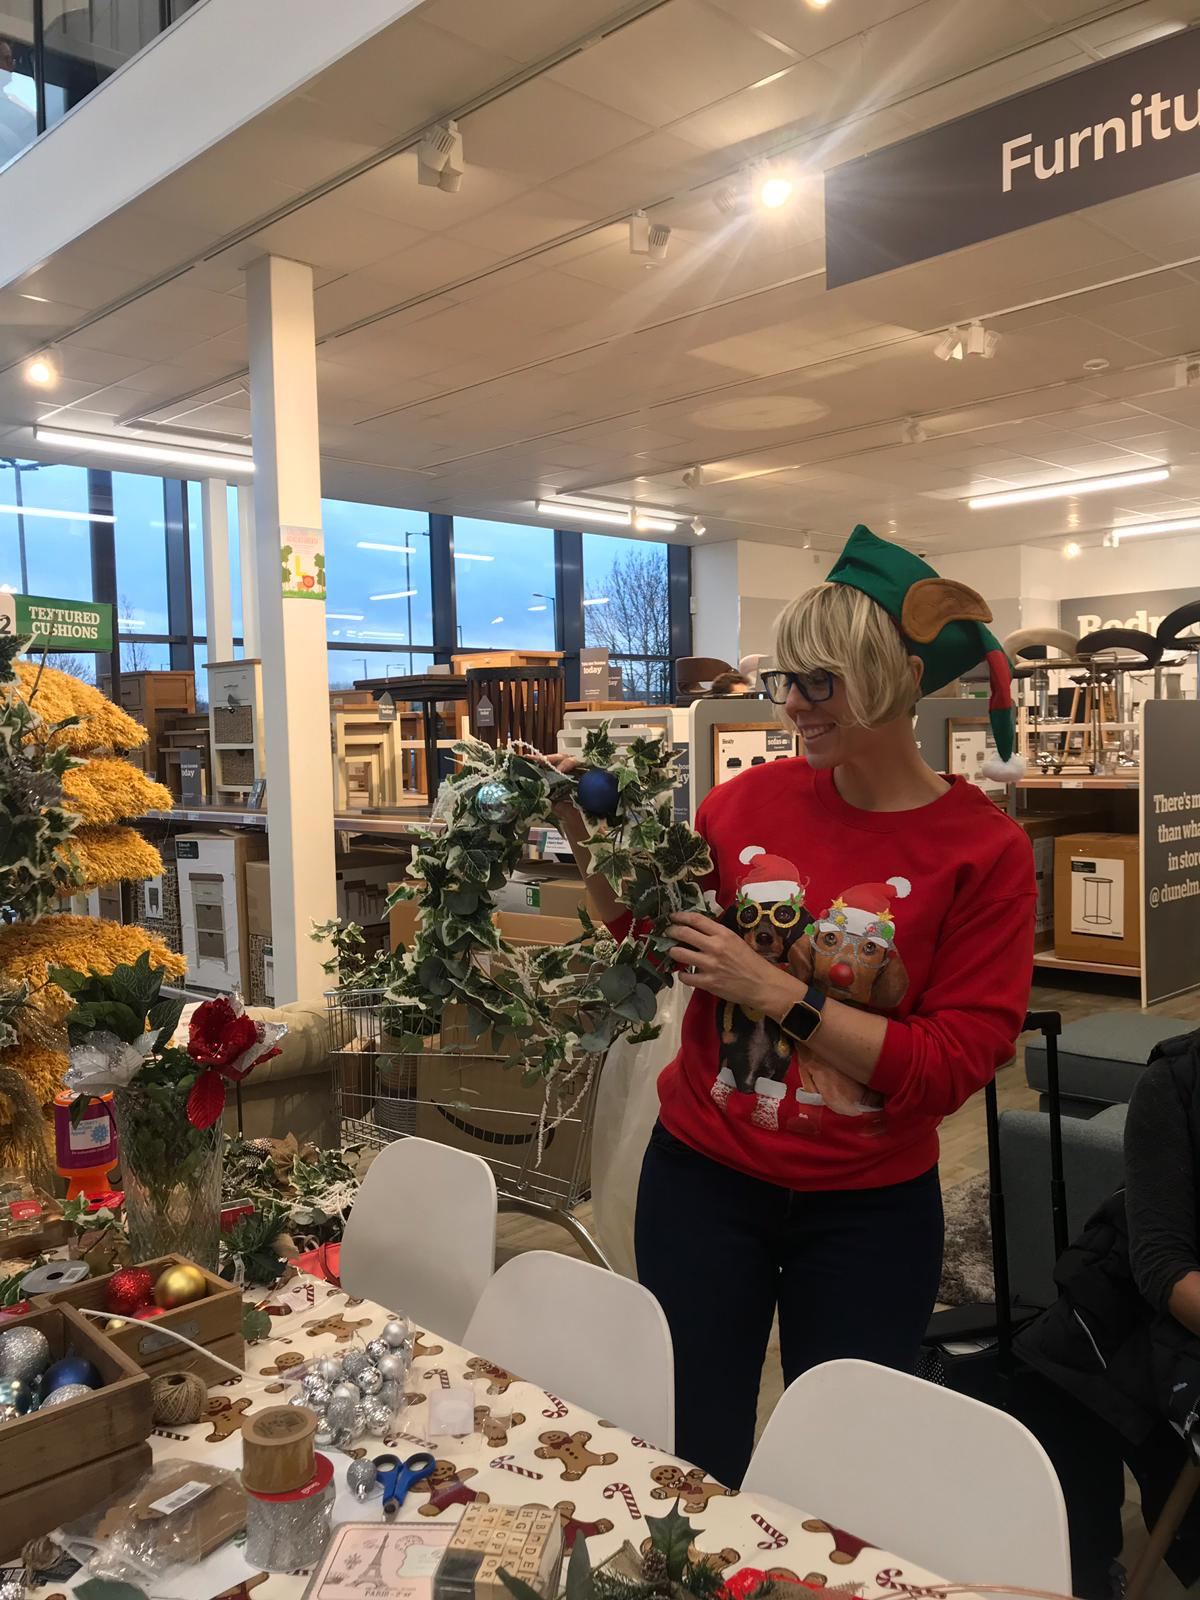 Discover the Secret Styling Club hosts a Christmas Wreath Making With Dunelm Mill in Nottingham says Interior Stylist Maxine Brady